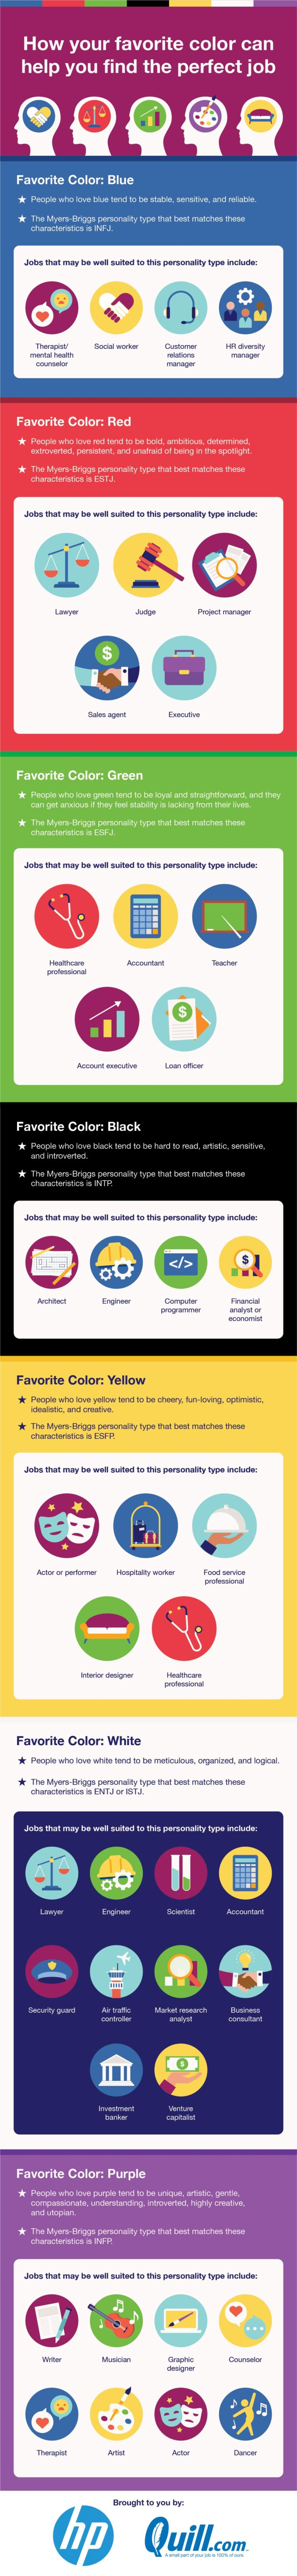 How your favorite color can help you find the perfect job